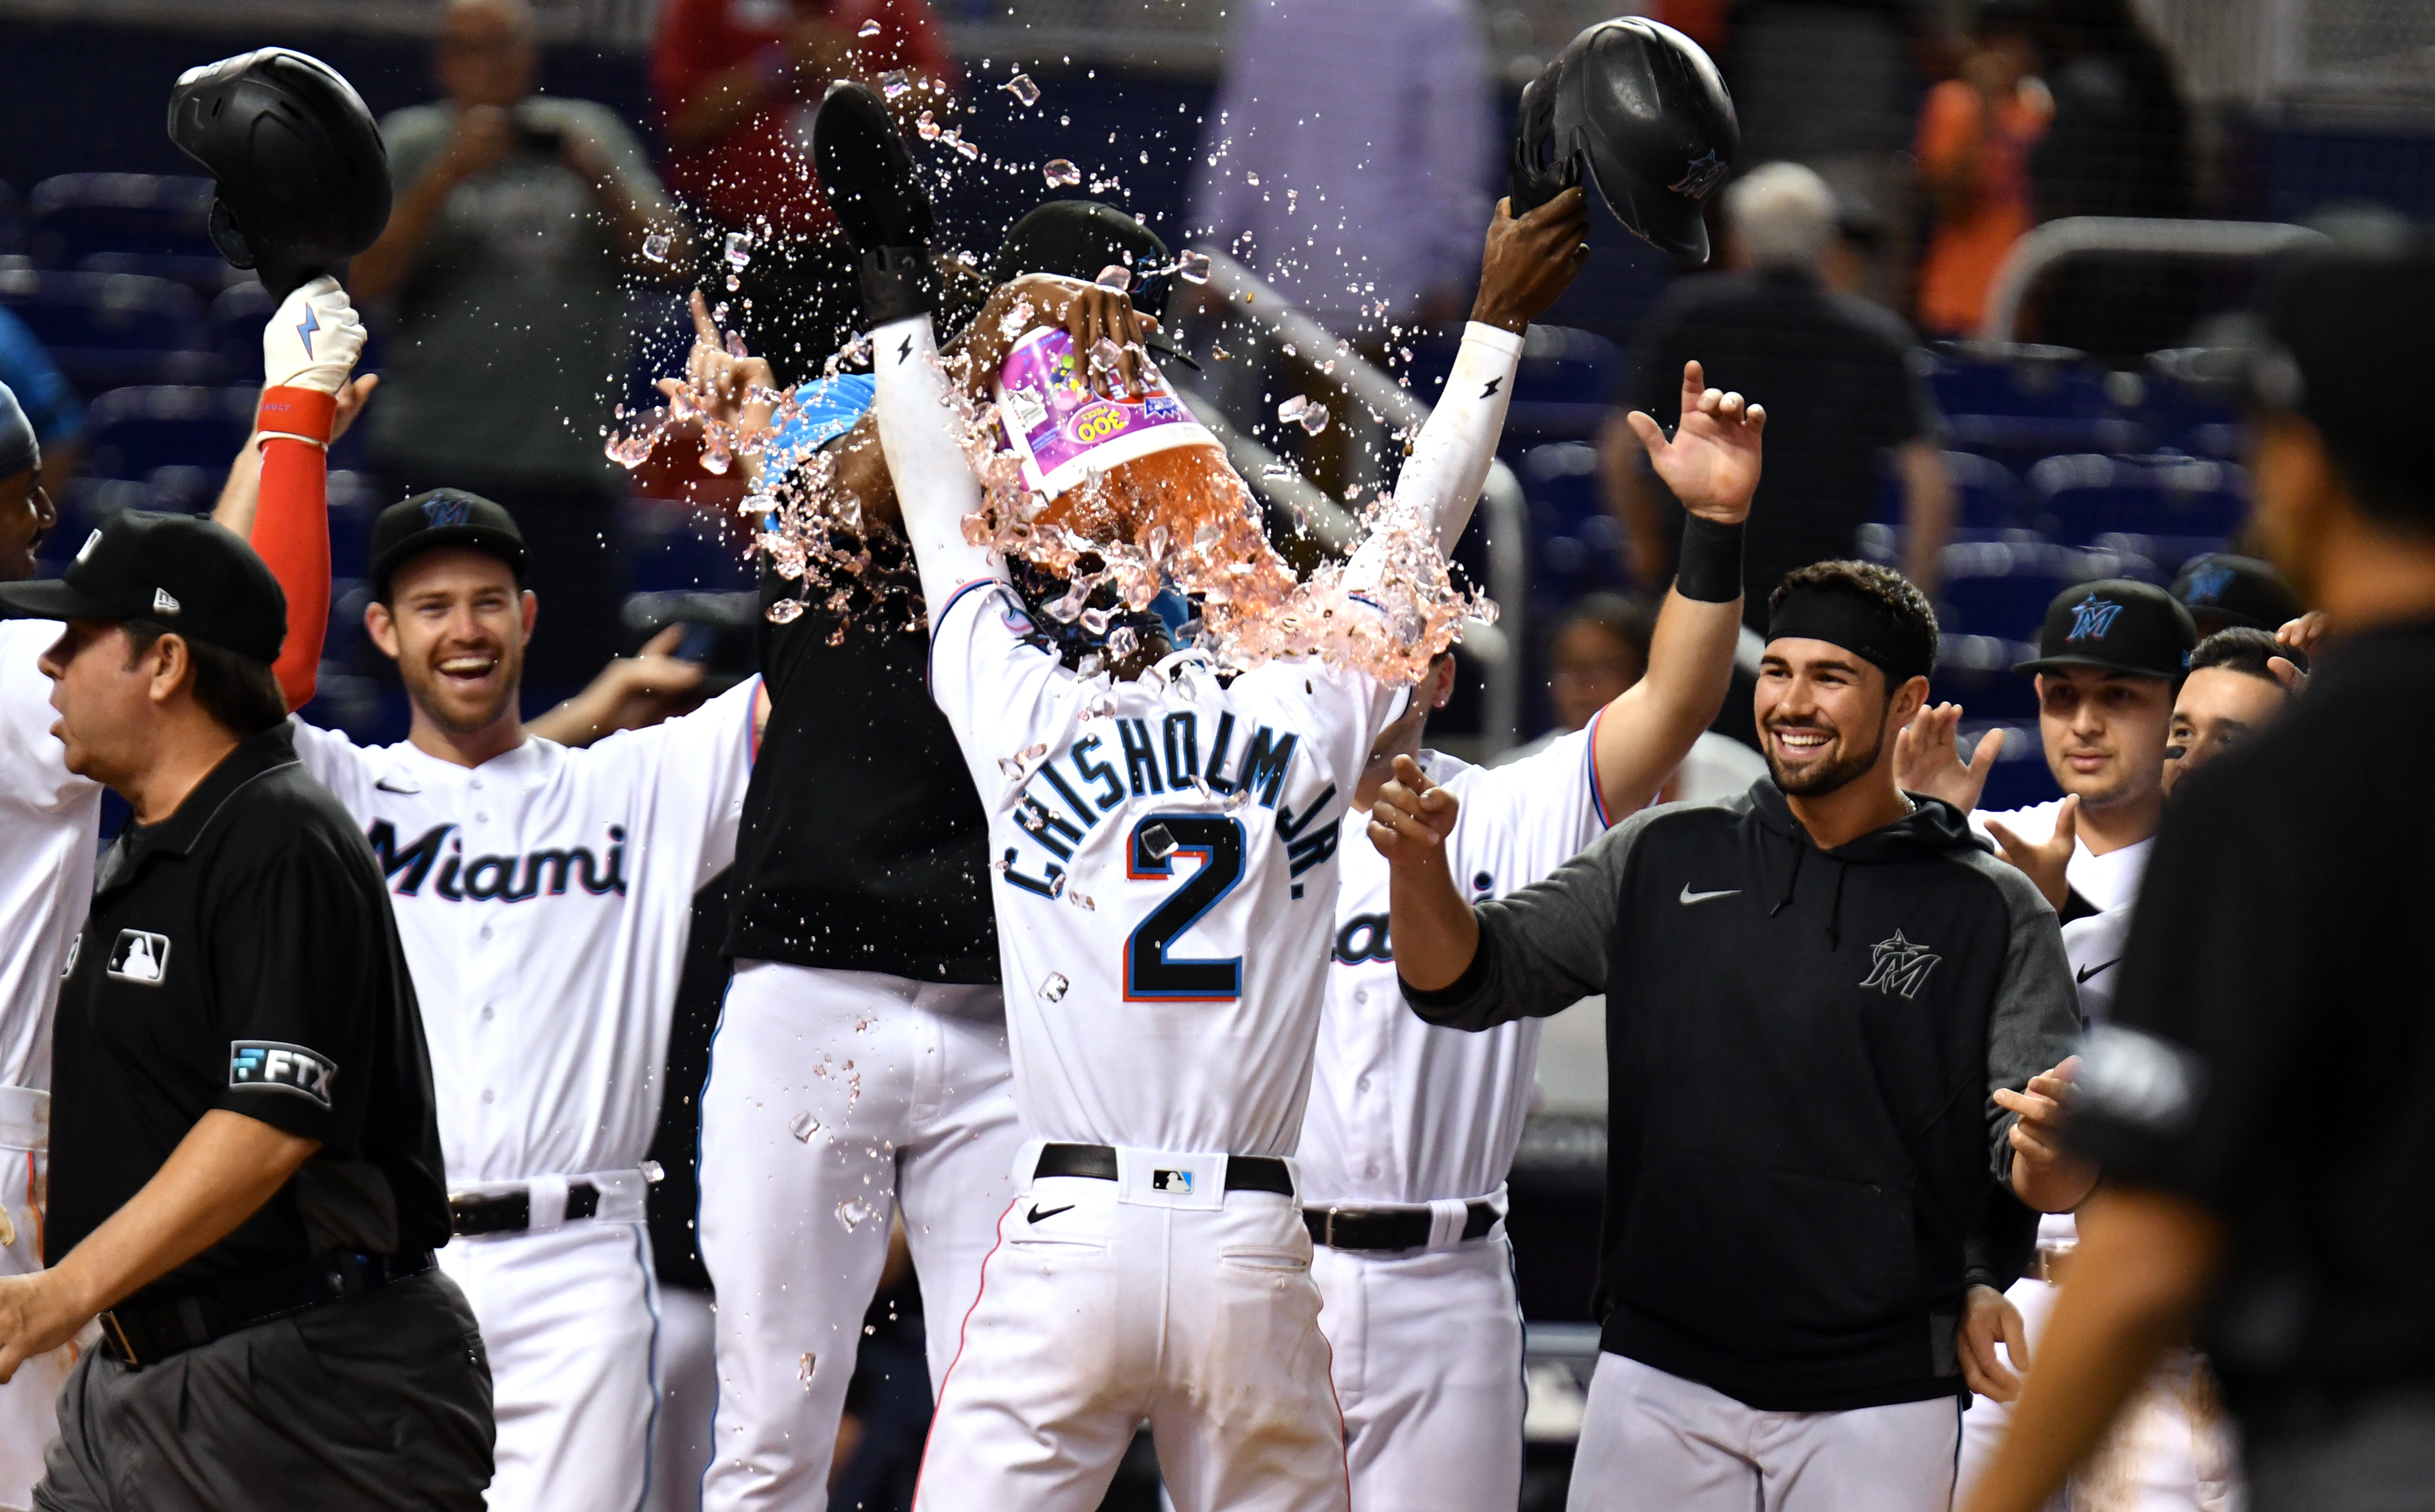 Miami Marlins second baseman Jazz Chisholm Jr. (2) celebrates with teammates scoring the winning run in the 10th inning against the Washington Nationals at loanDepot Park